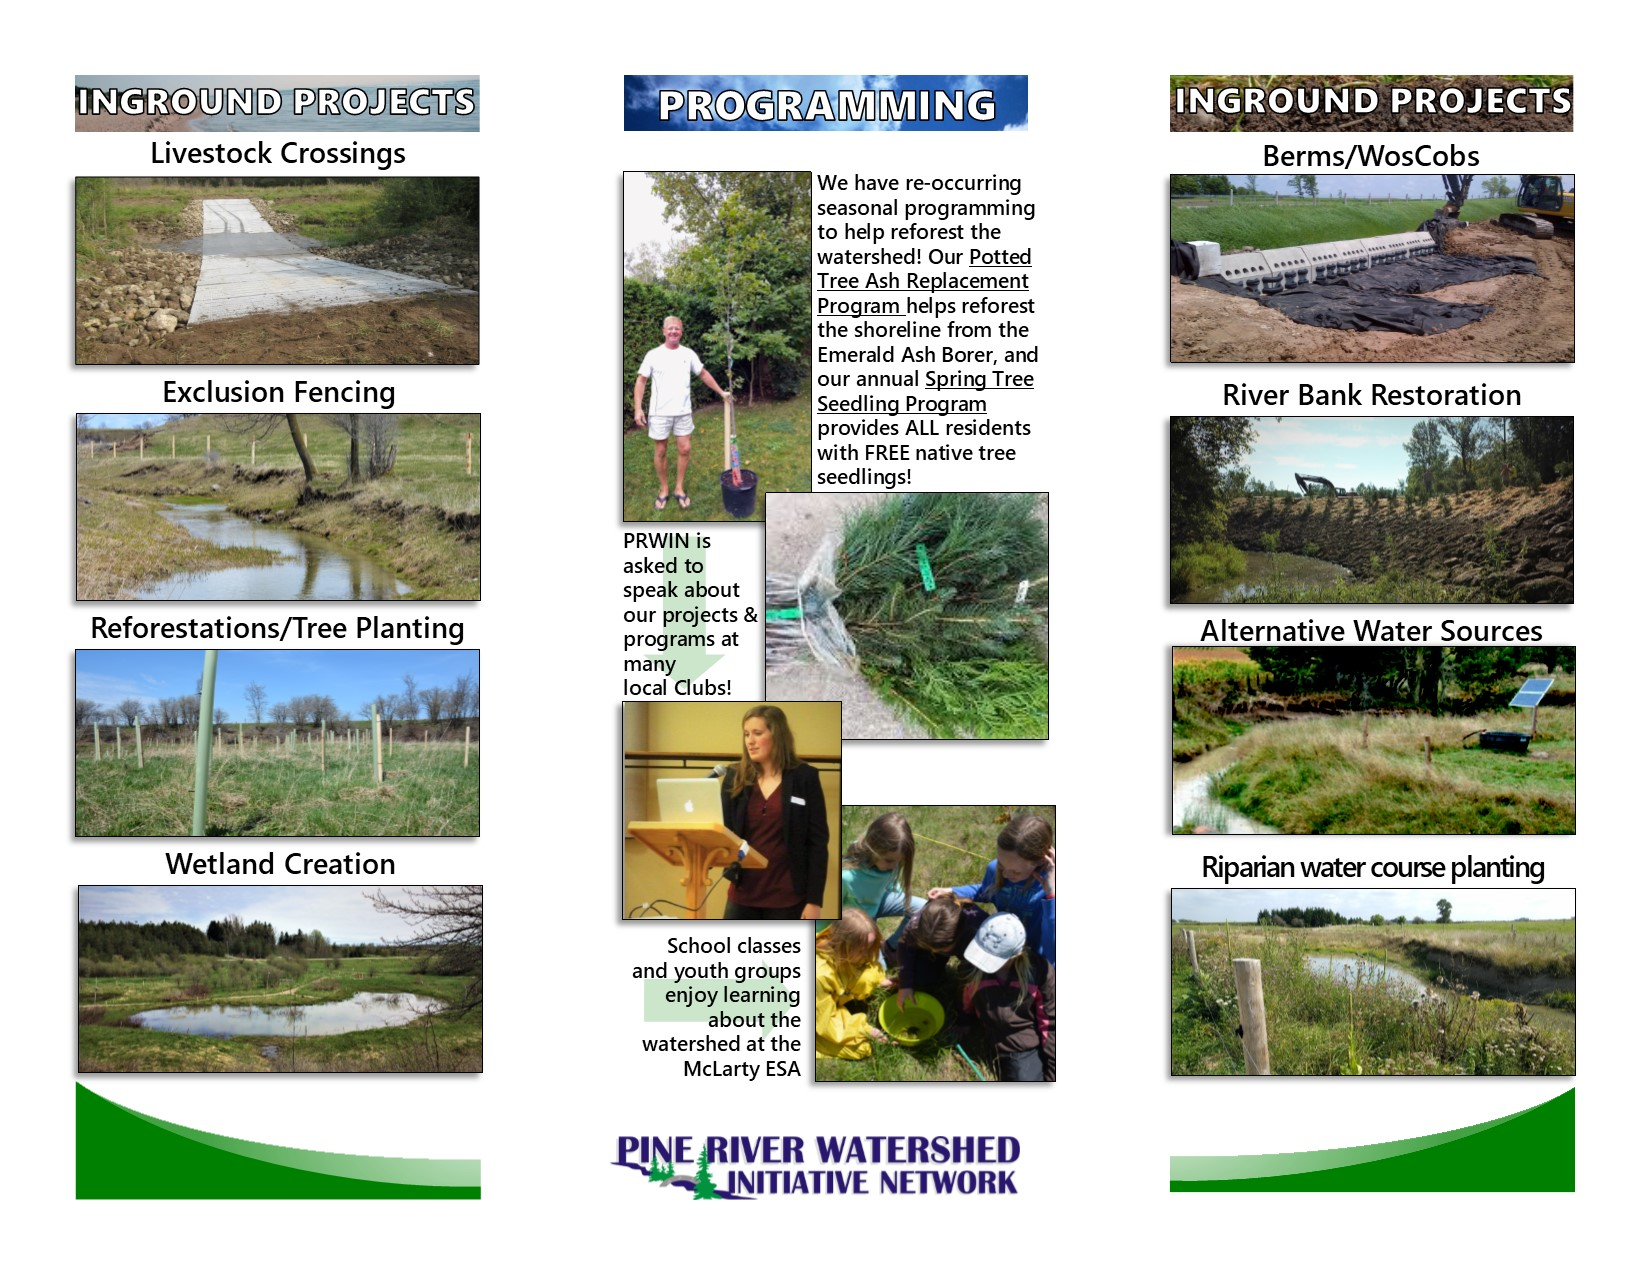 New Pine River Watershed Brochure!